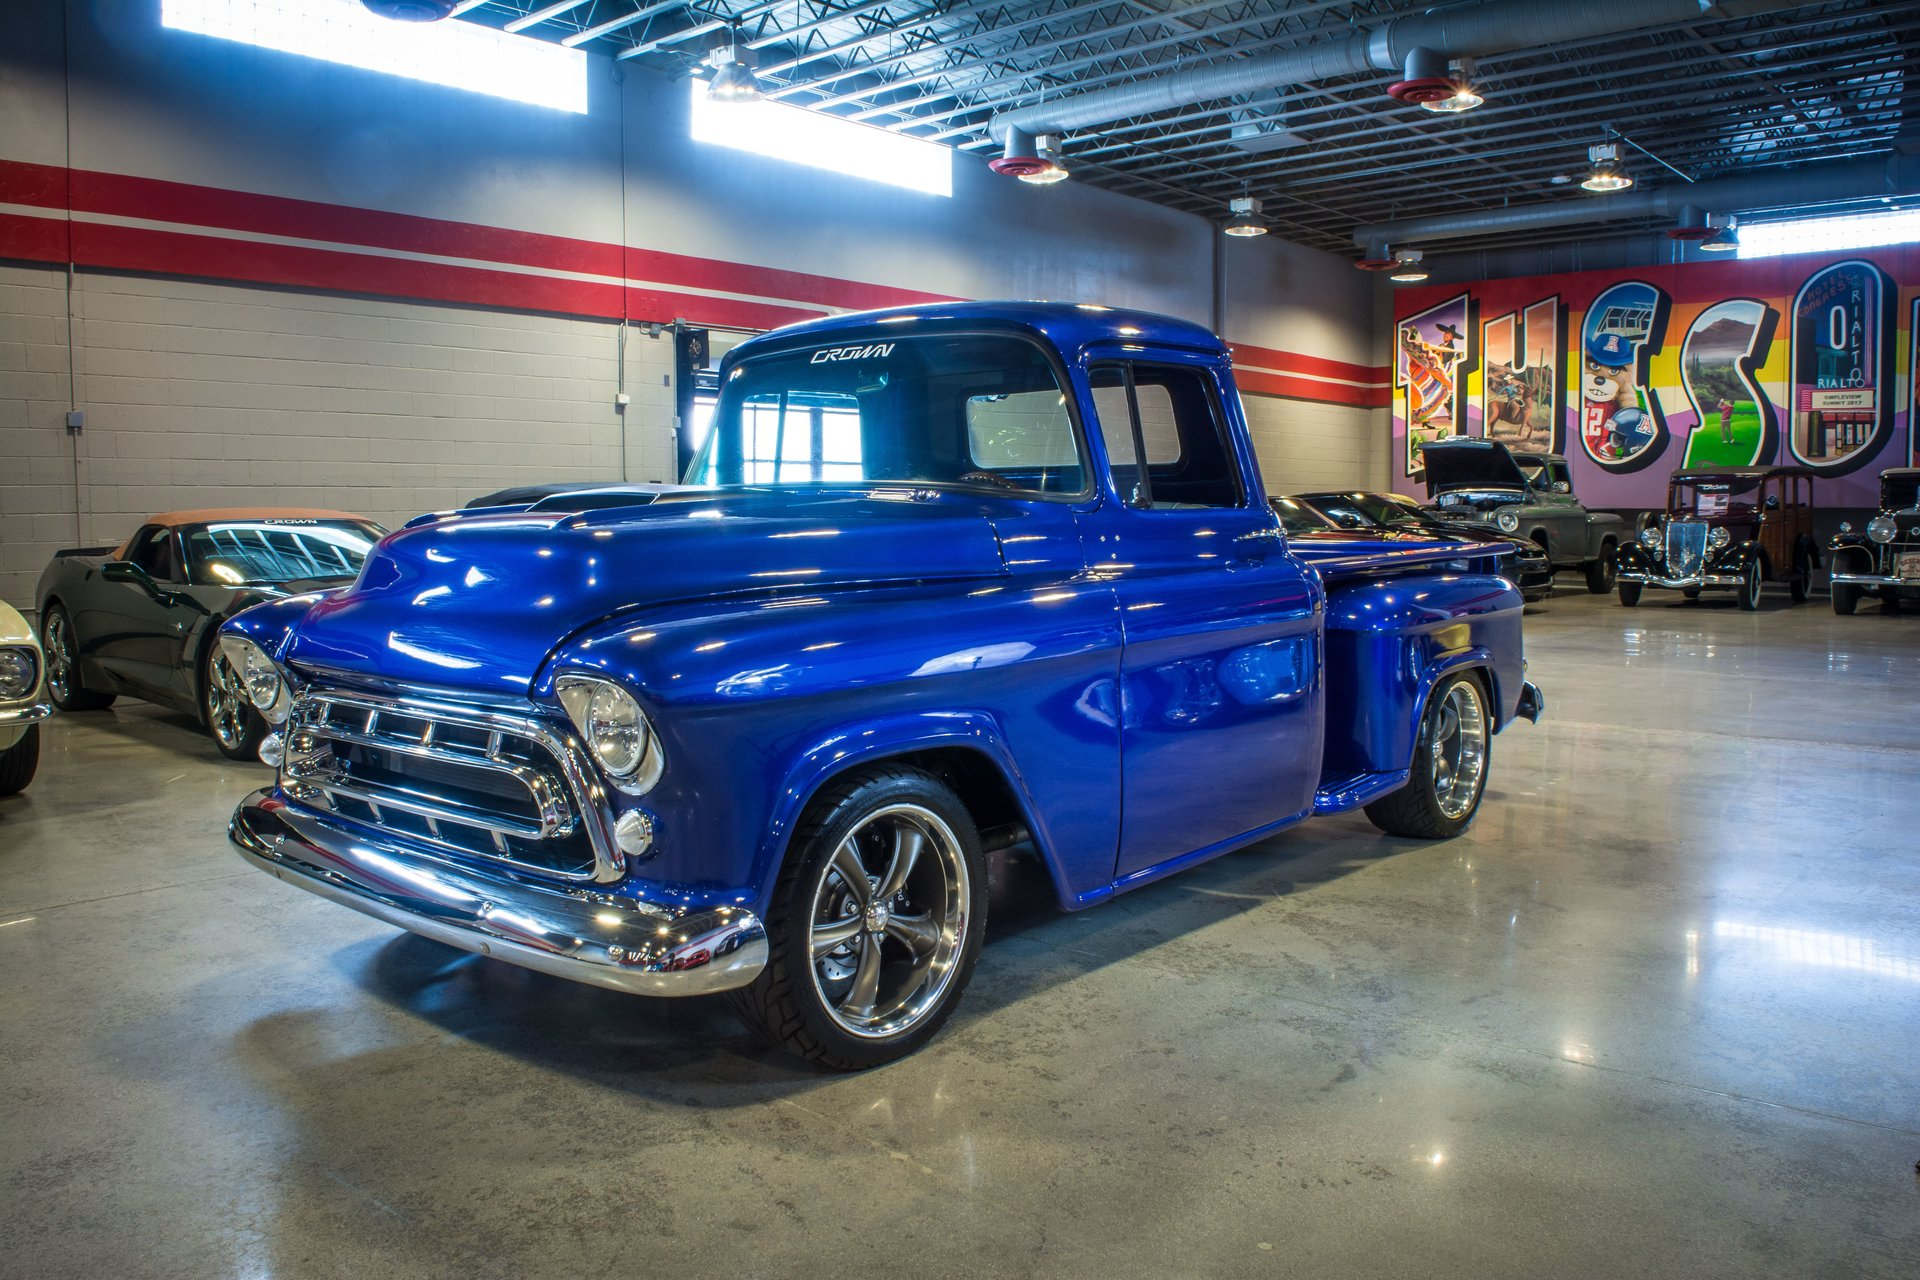 1957 Chevrolet 3100 Crown Concepts Chevy Truck Paint Colors